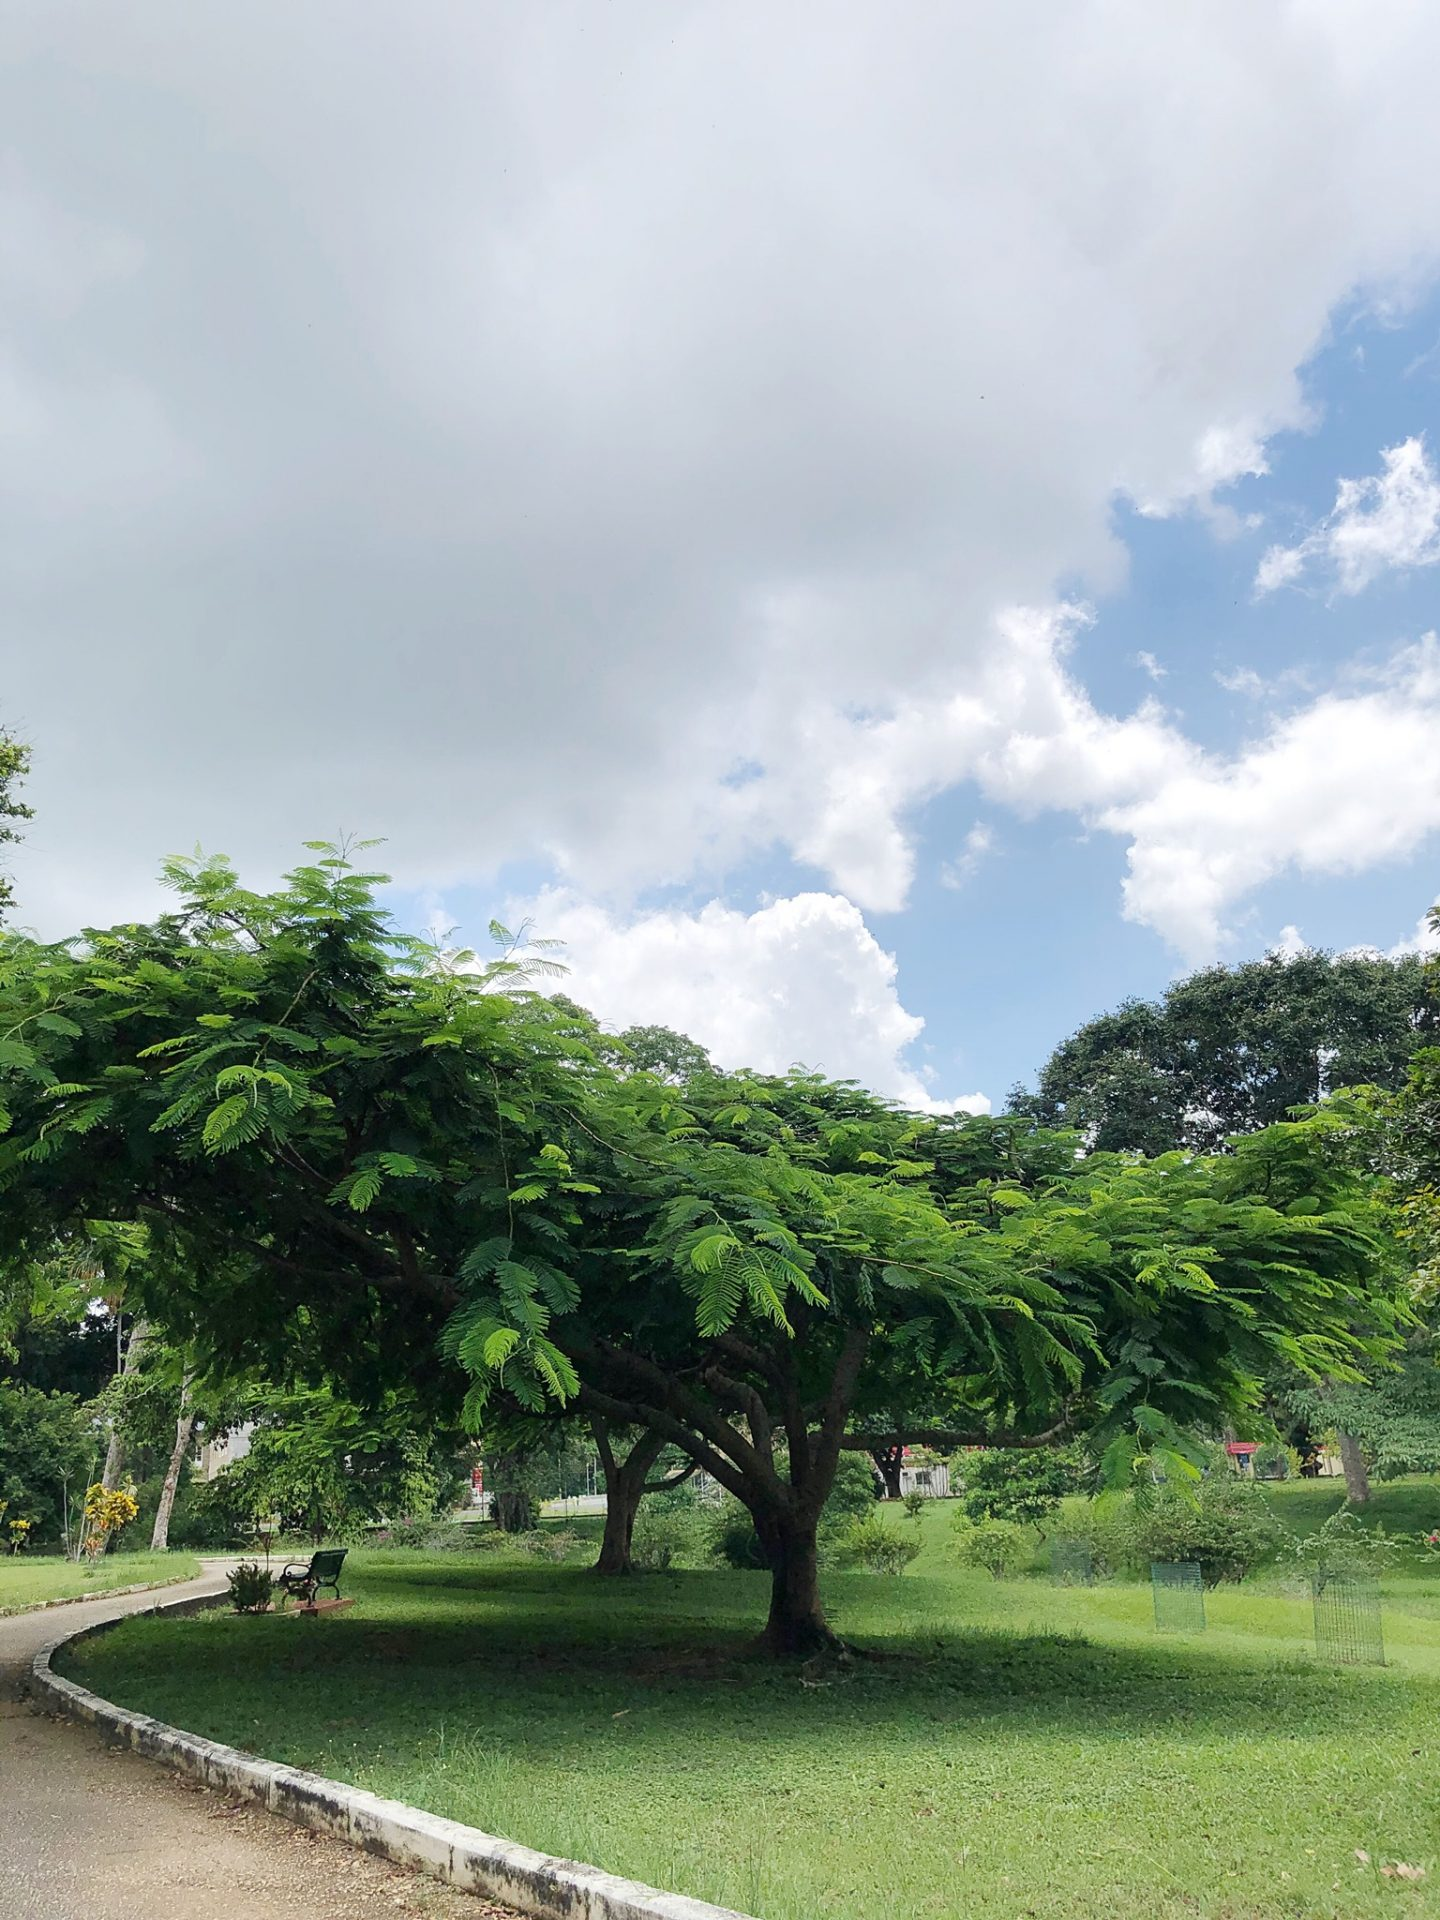 The Royal Botanic Gardens Trinidad